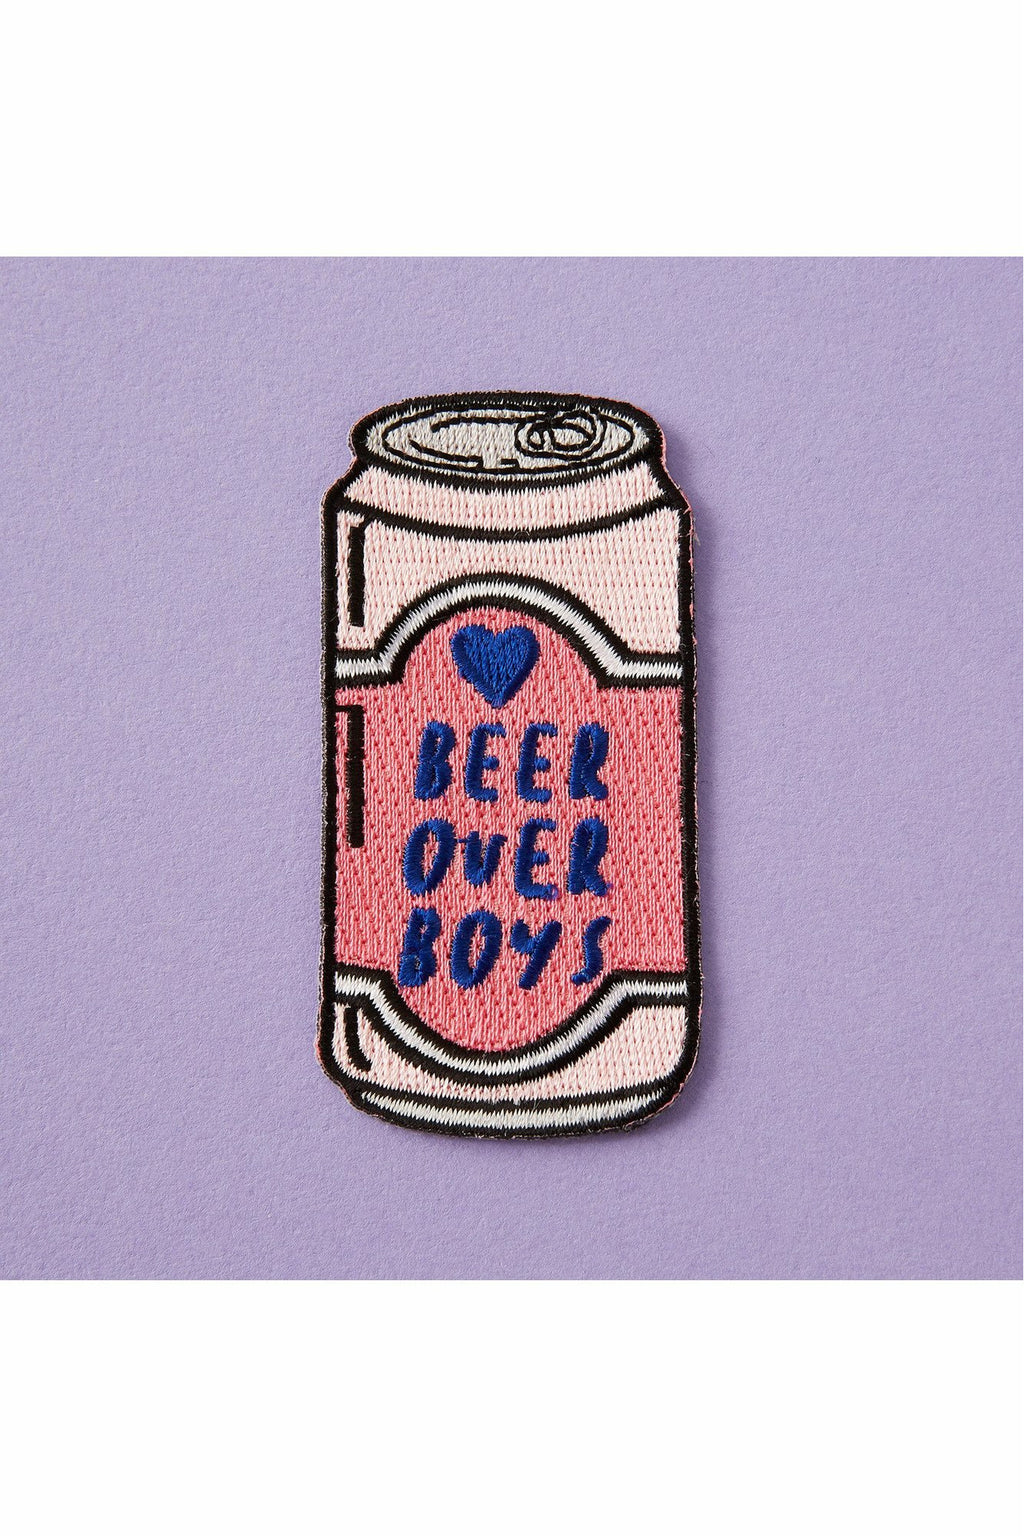 Beer Over Boys Patch